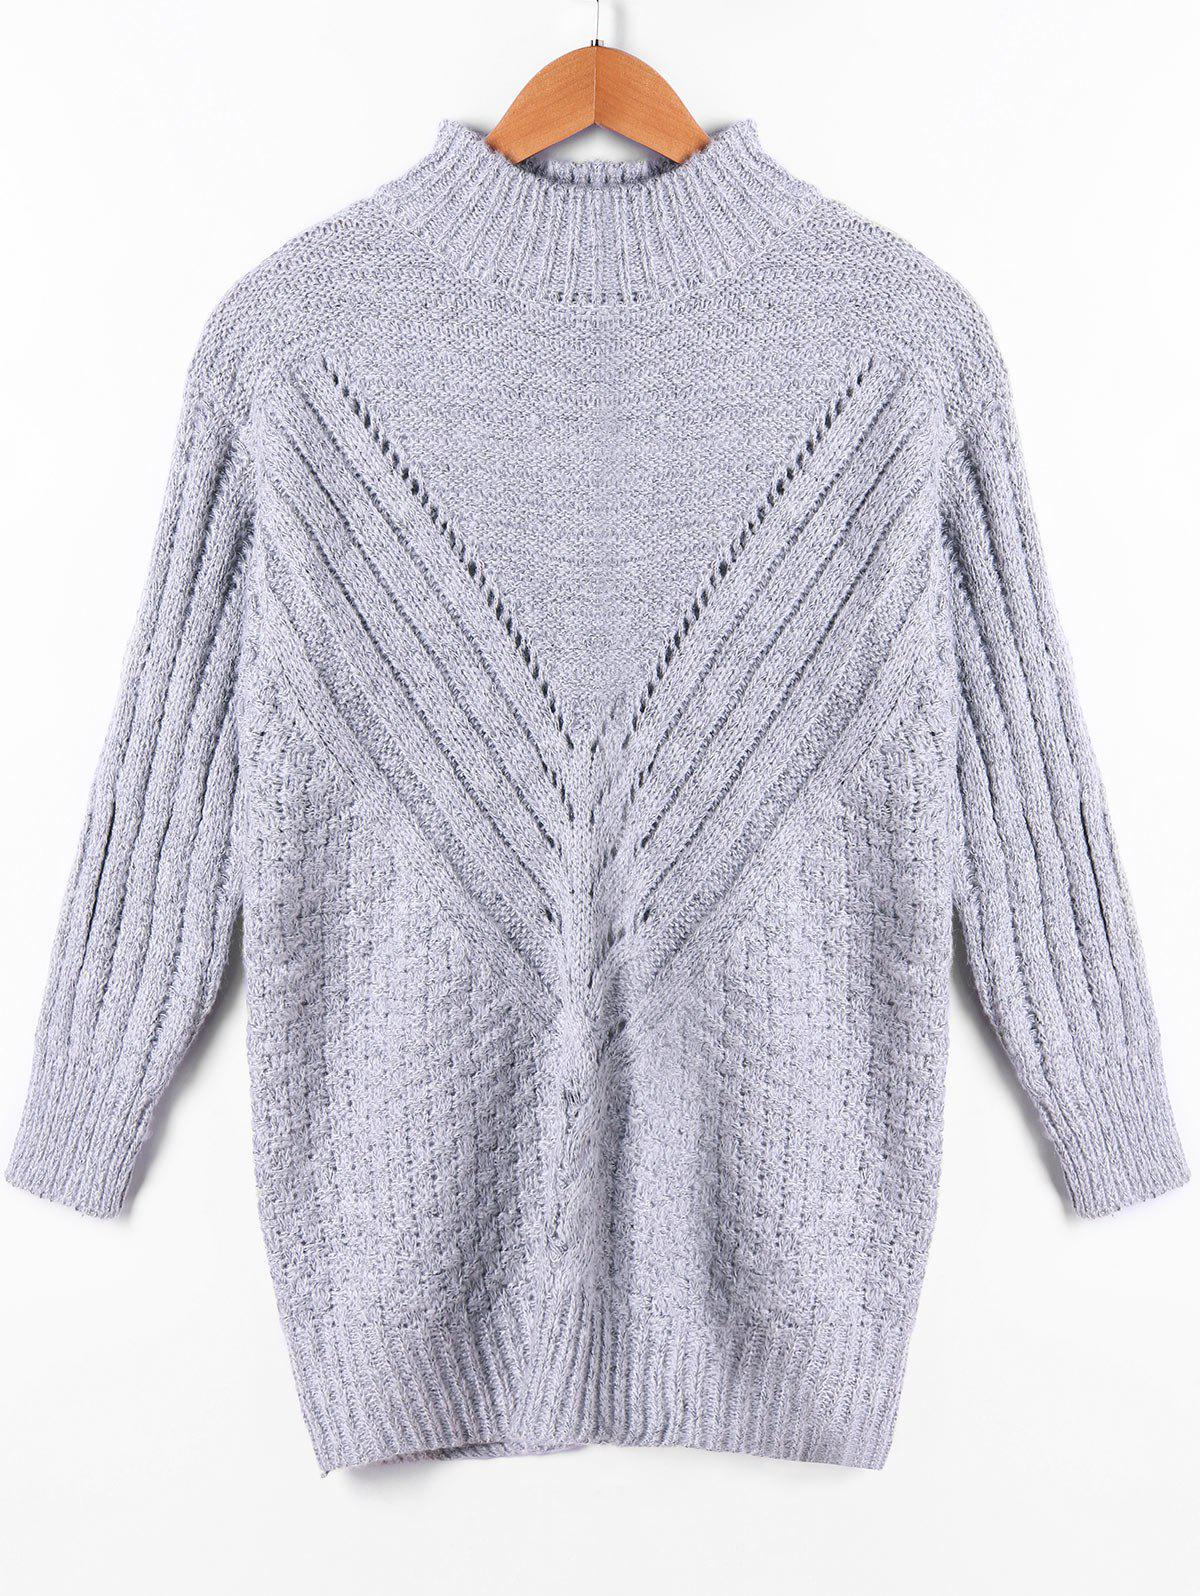 Openwork Insert Ribbed High Neck Sweater